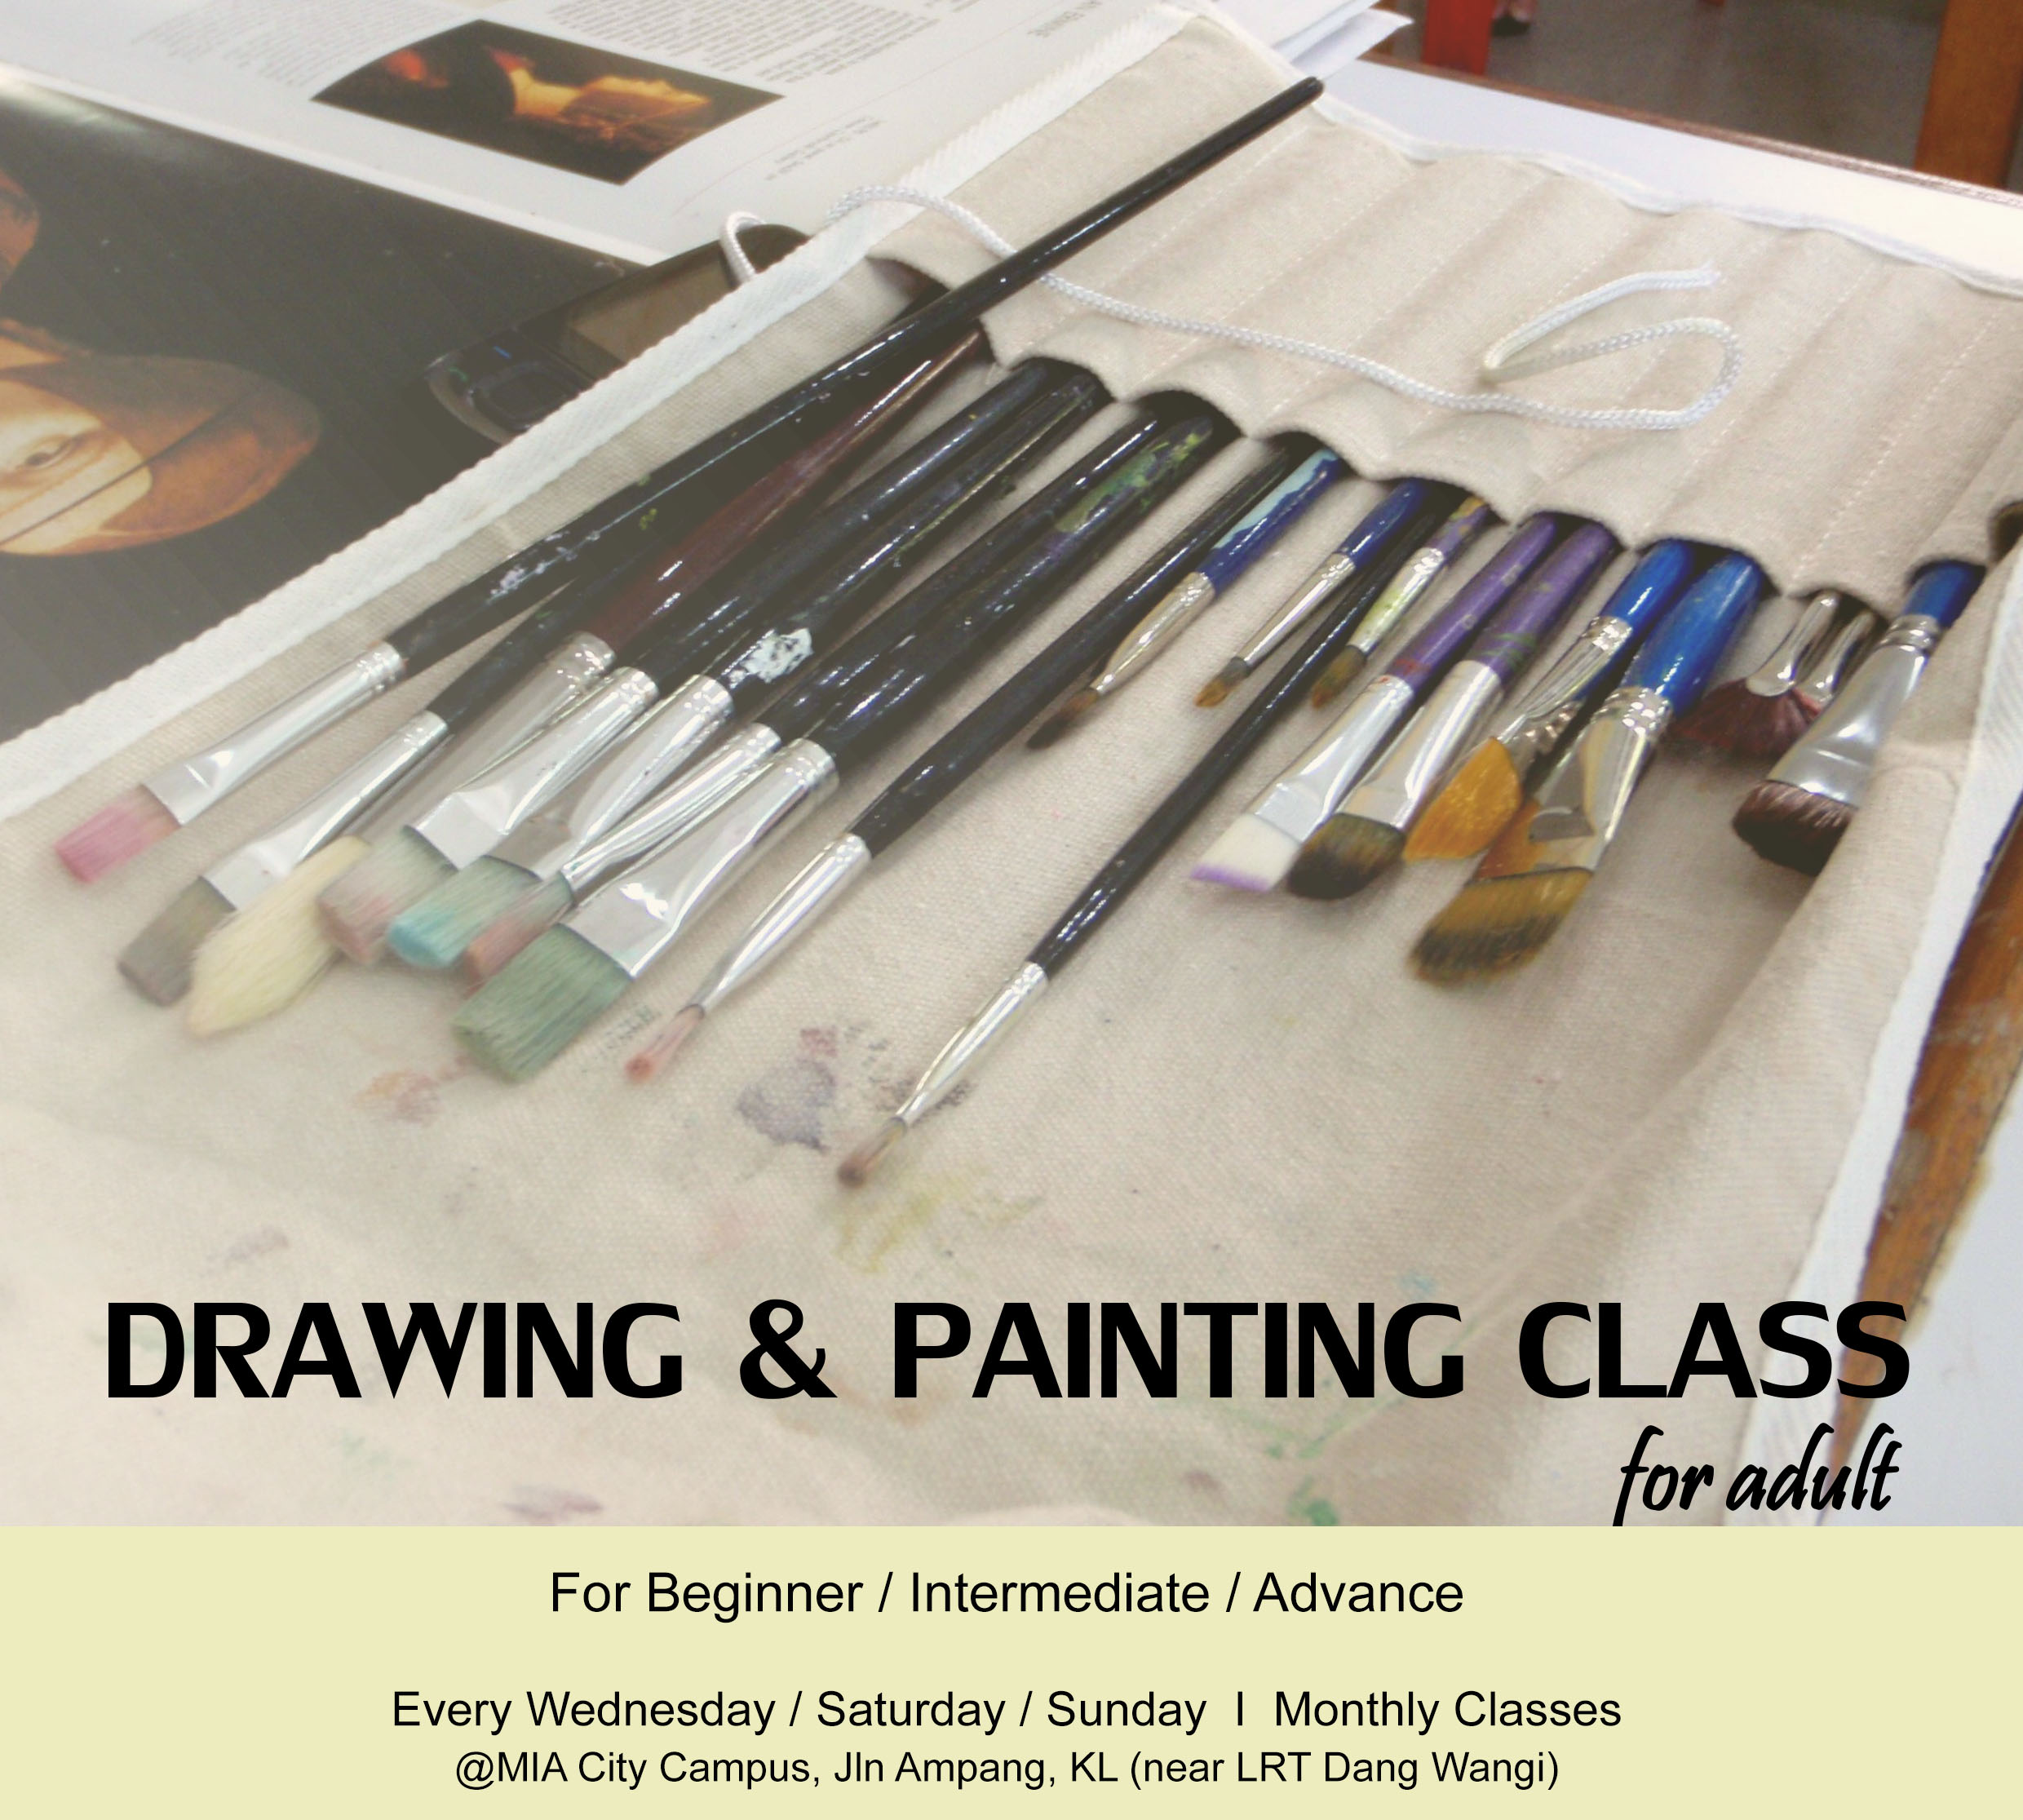 Drawing & Painting Class for Beginner / Intermediate / Advance